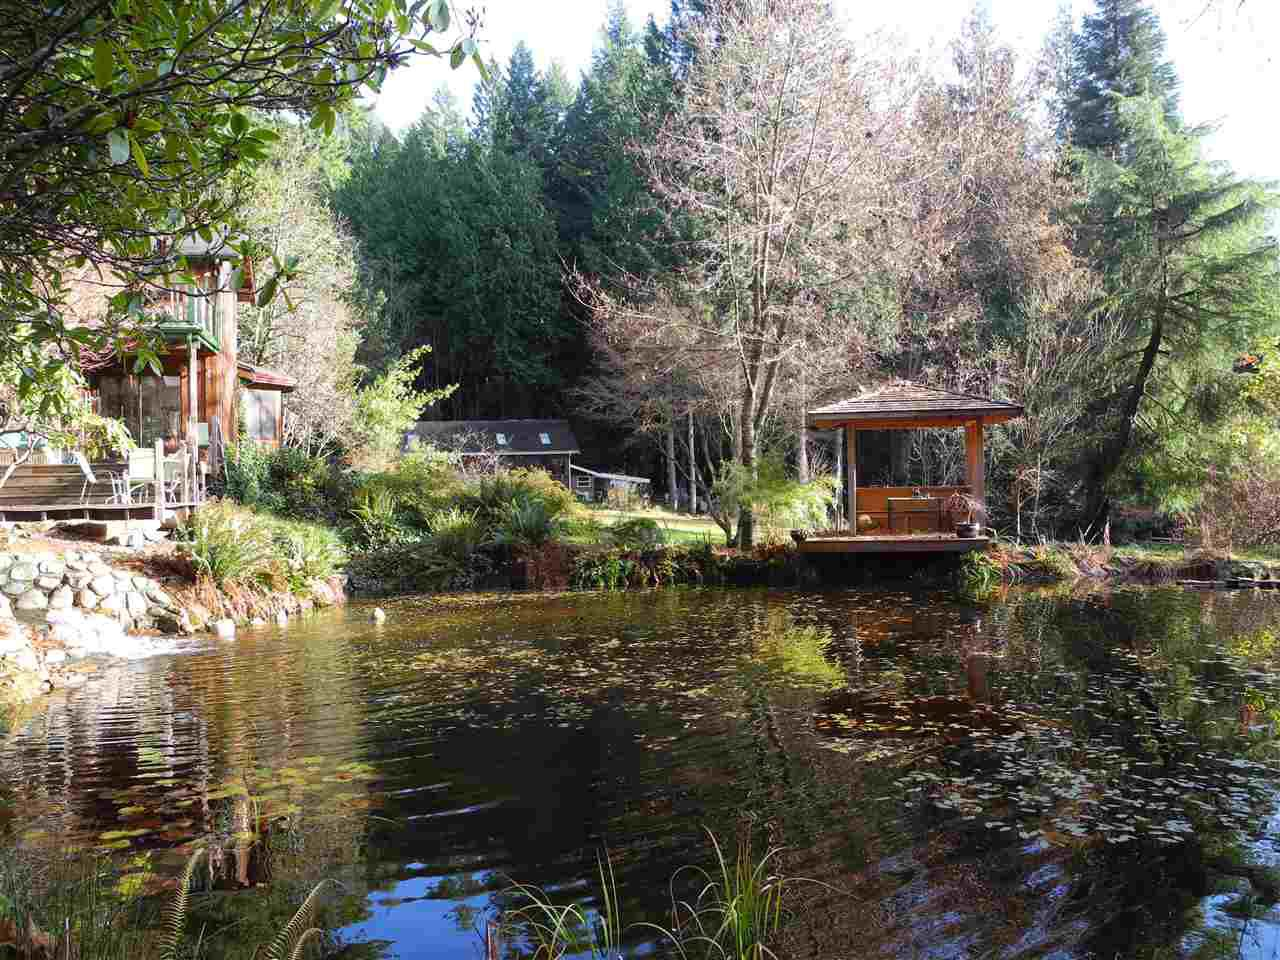 Main Photo: 2359 GRANT Road: Roberts Creek House for sale (Sunshine Coast)  : MLS®# R2422702